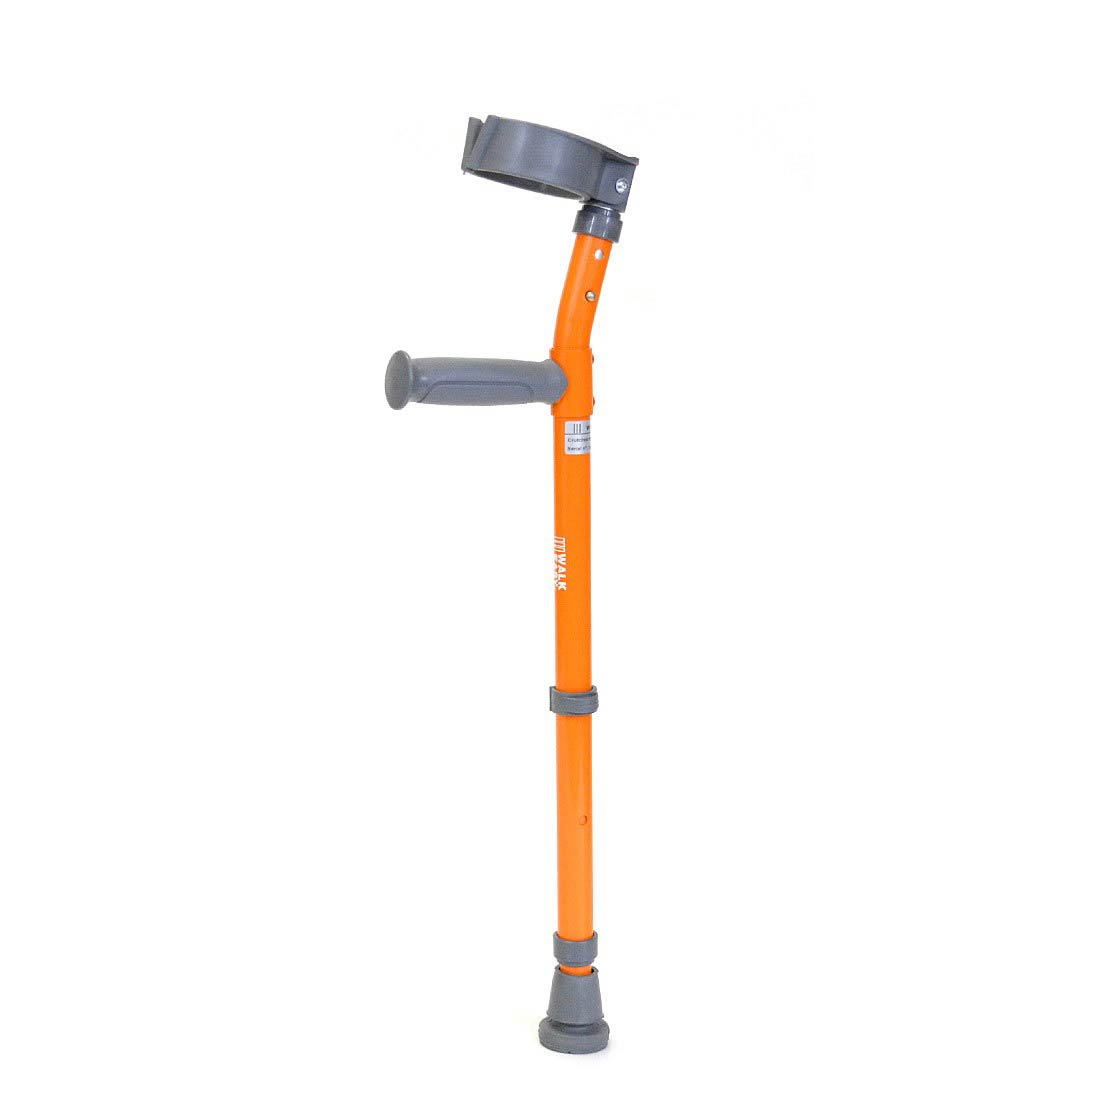 Walk Easy pediatric forearm height adjustable crutches with 3